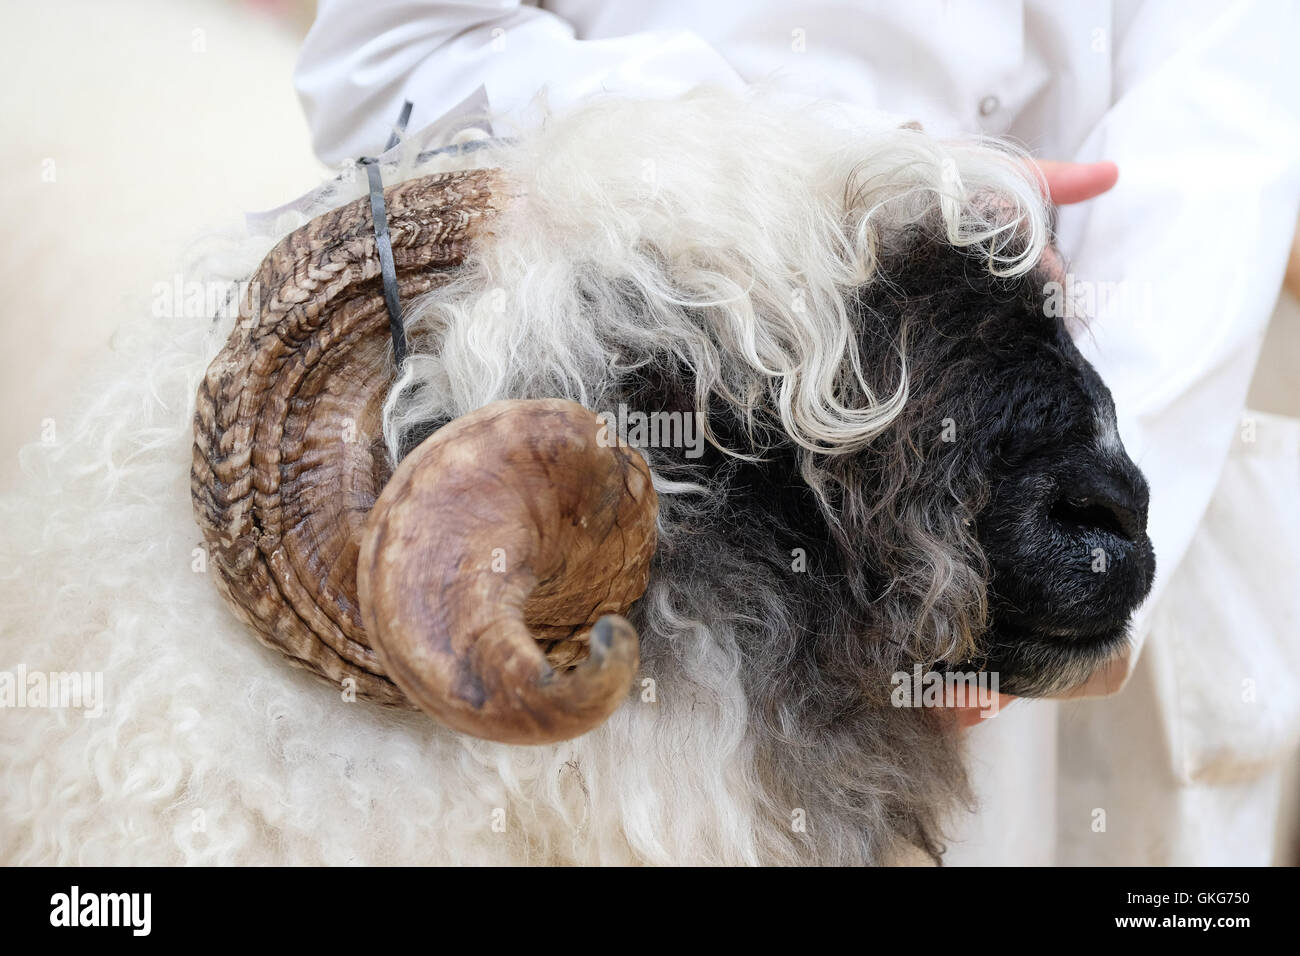 Carlisle, UK. 19th August, 2016. The Valais Blacknose Sheep Society UK hosts the UK's first ever show and sale - Stock Image